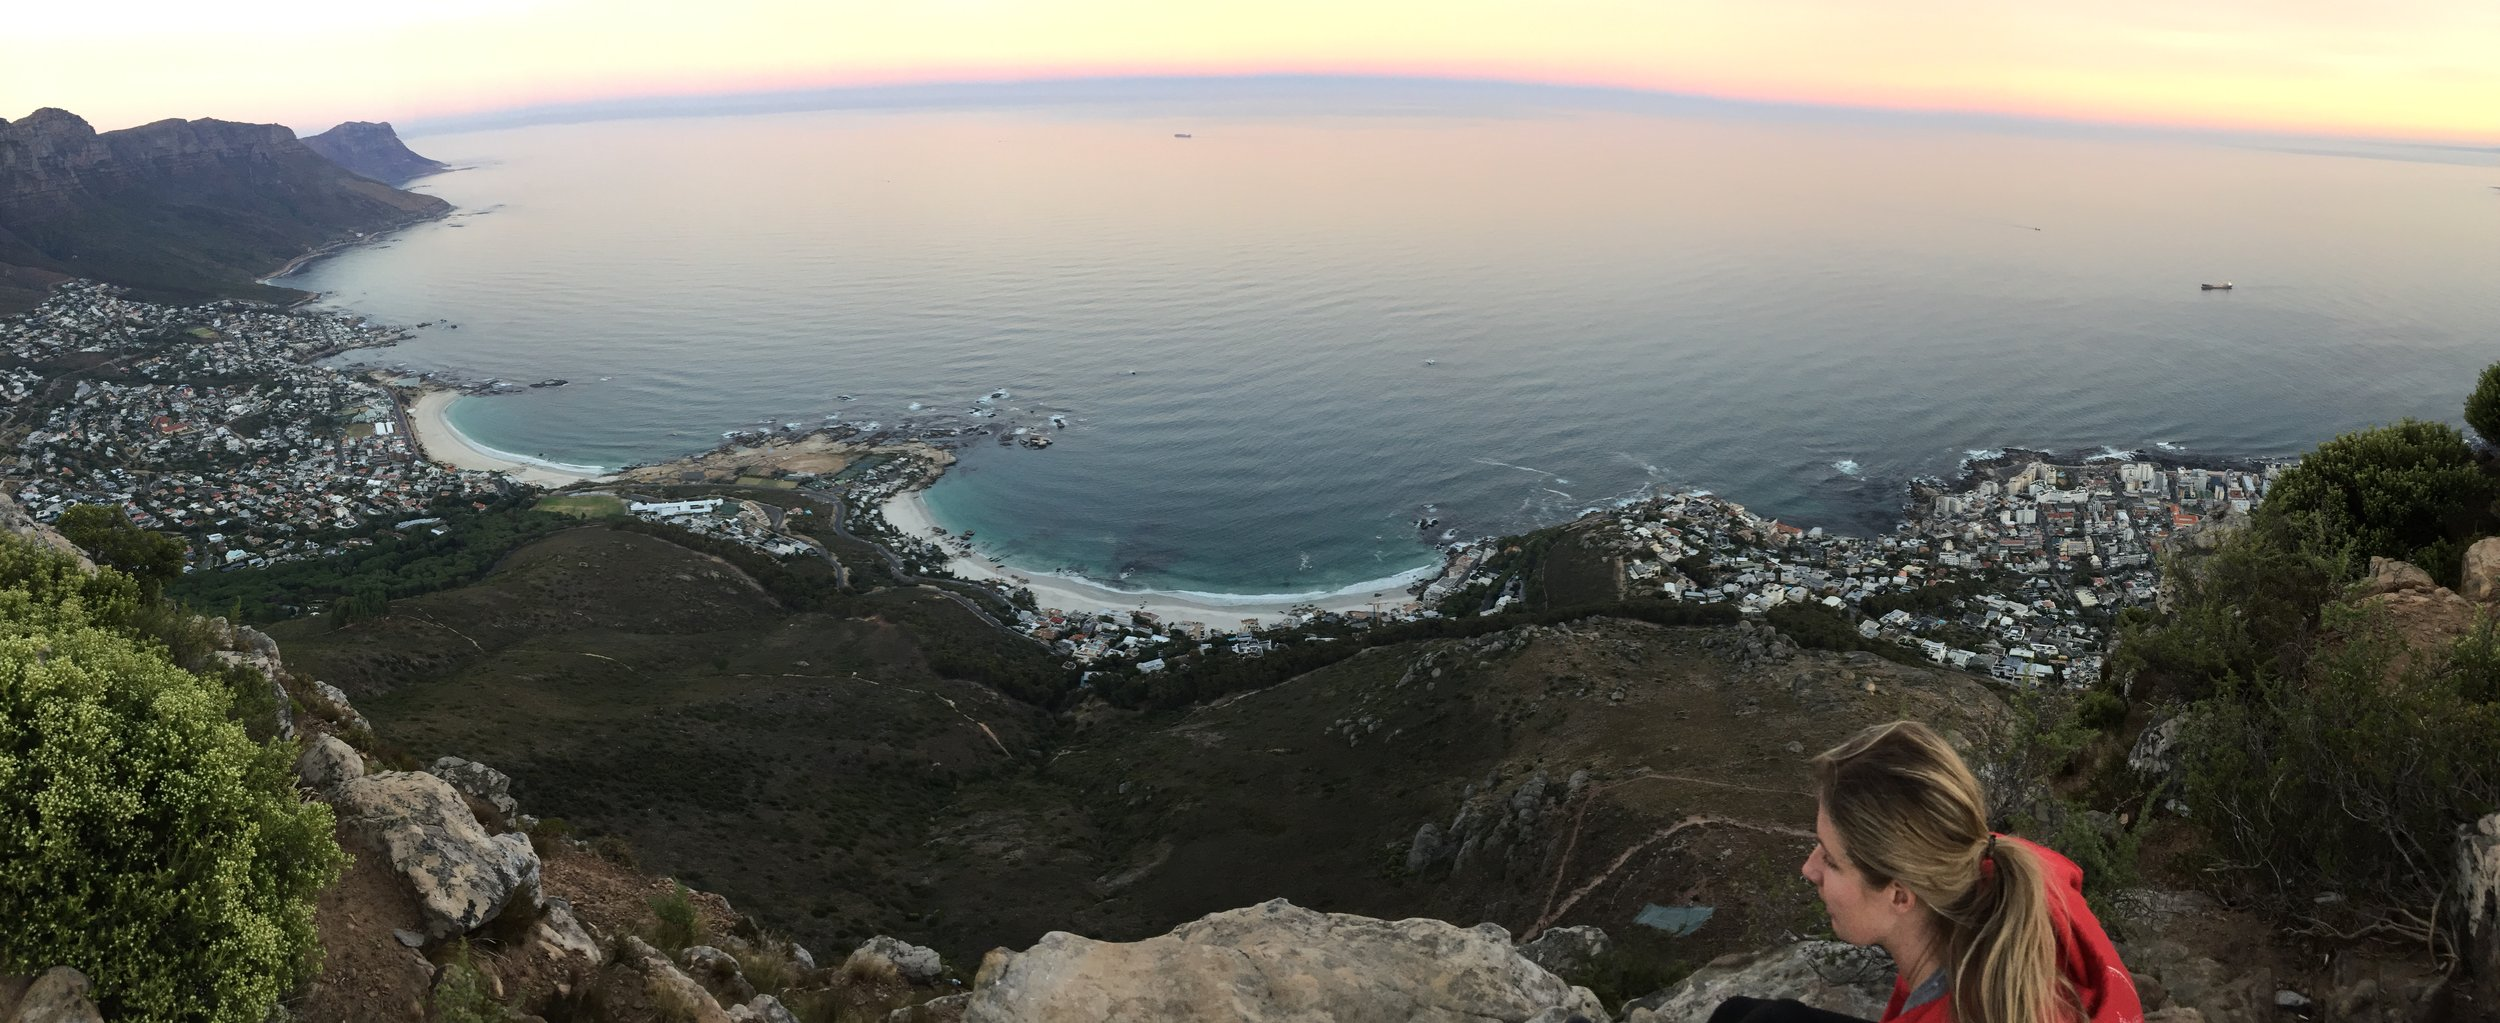 The views from the top of Lion's Head hike in Cape Town. Dan, Sarah, and I somehow got ourselves to wake up at 5:30am to see sunrise from the top of the mountain.